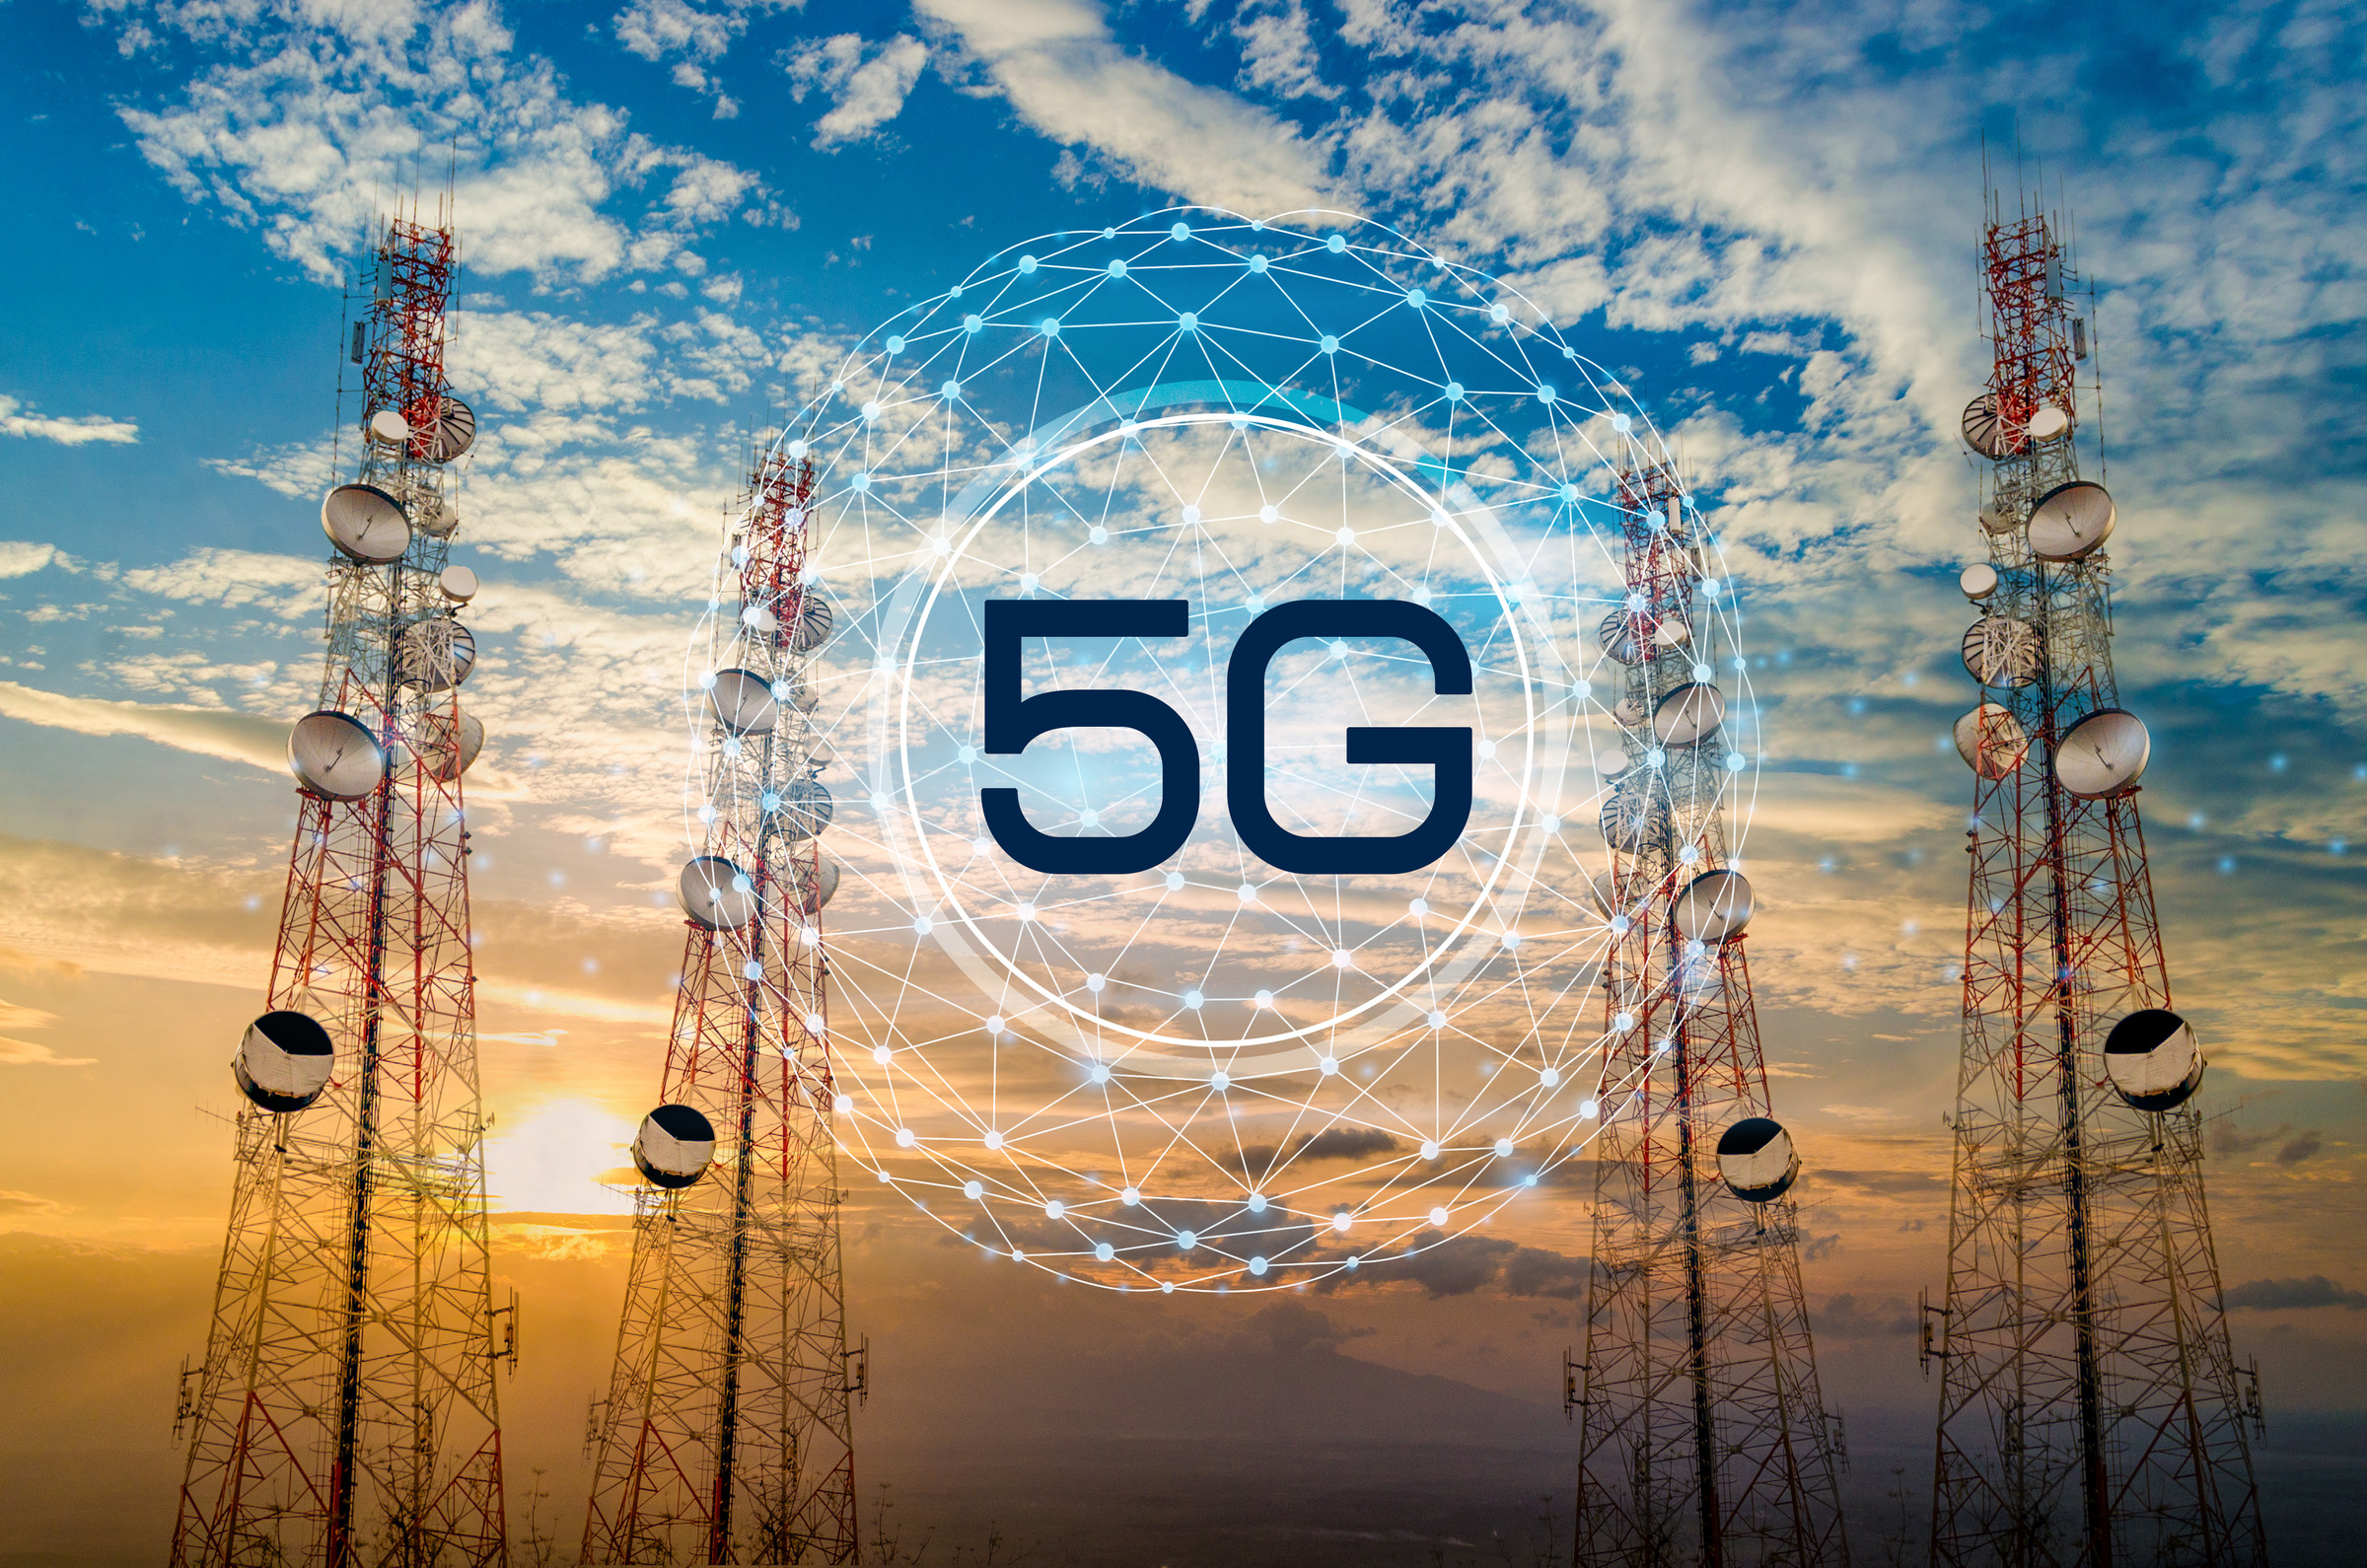 5G presents opportunity and risk for American businesses and federal agencies